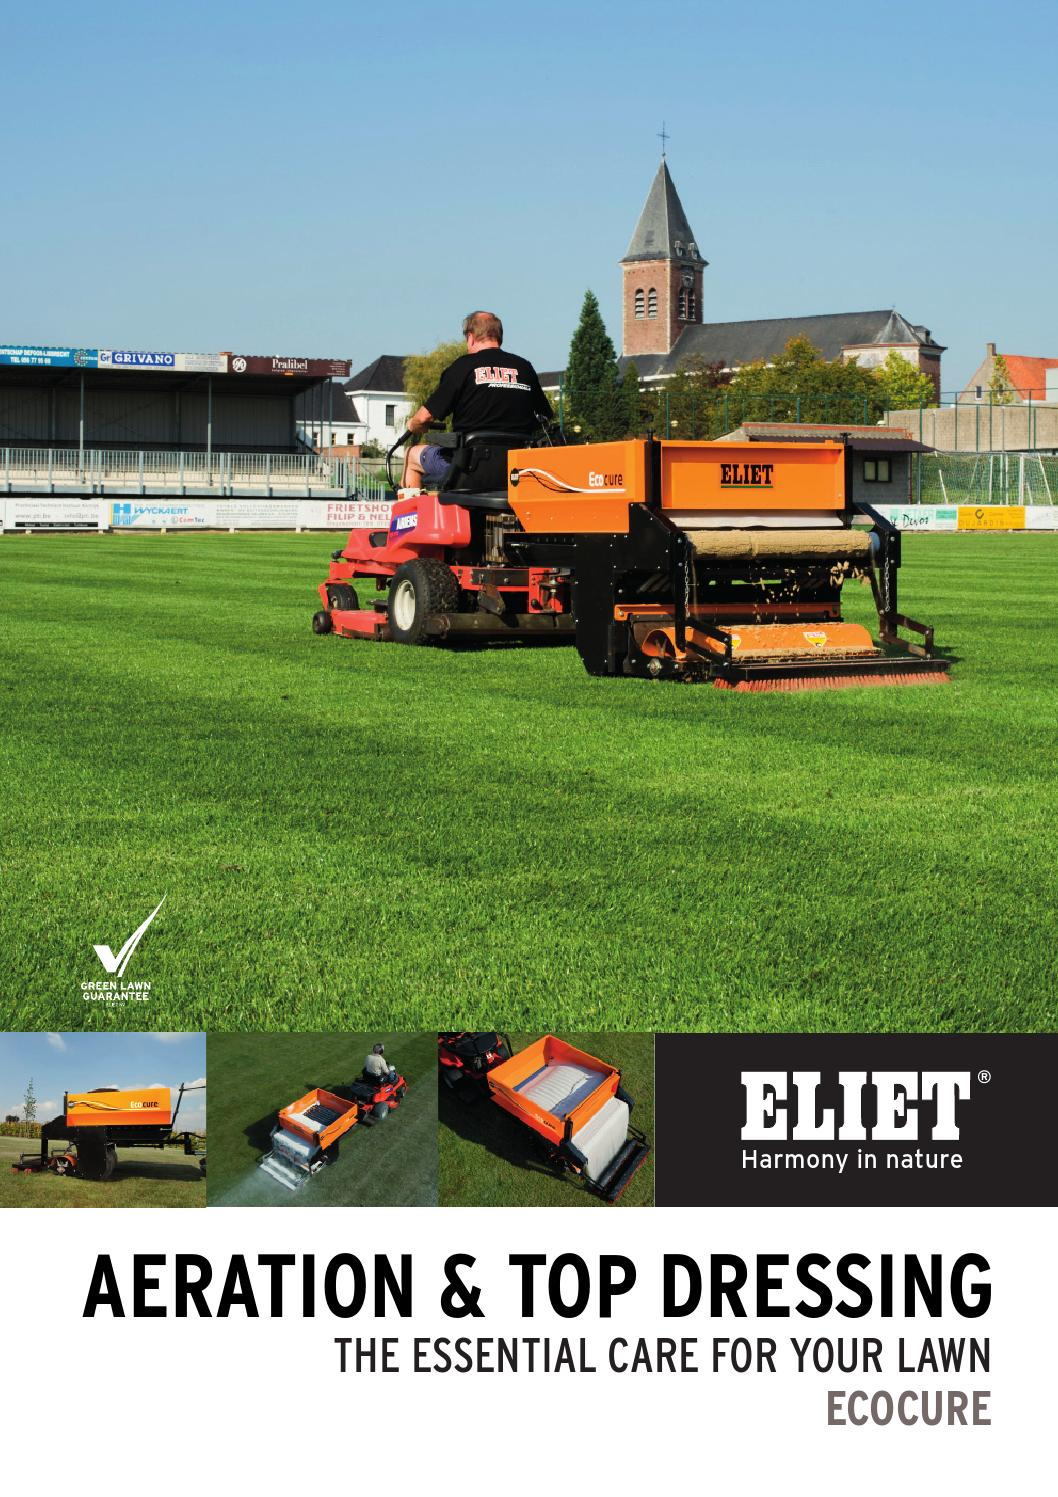 Aeration Amp Top Dressing Ecocure By Eliet Issuu